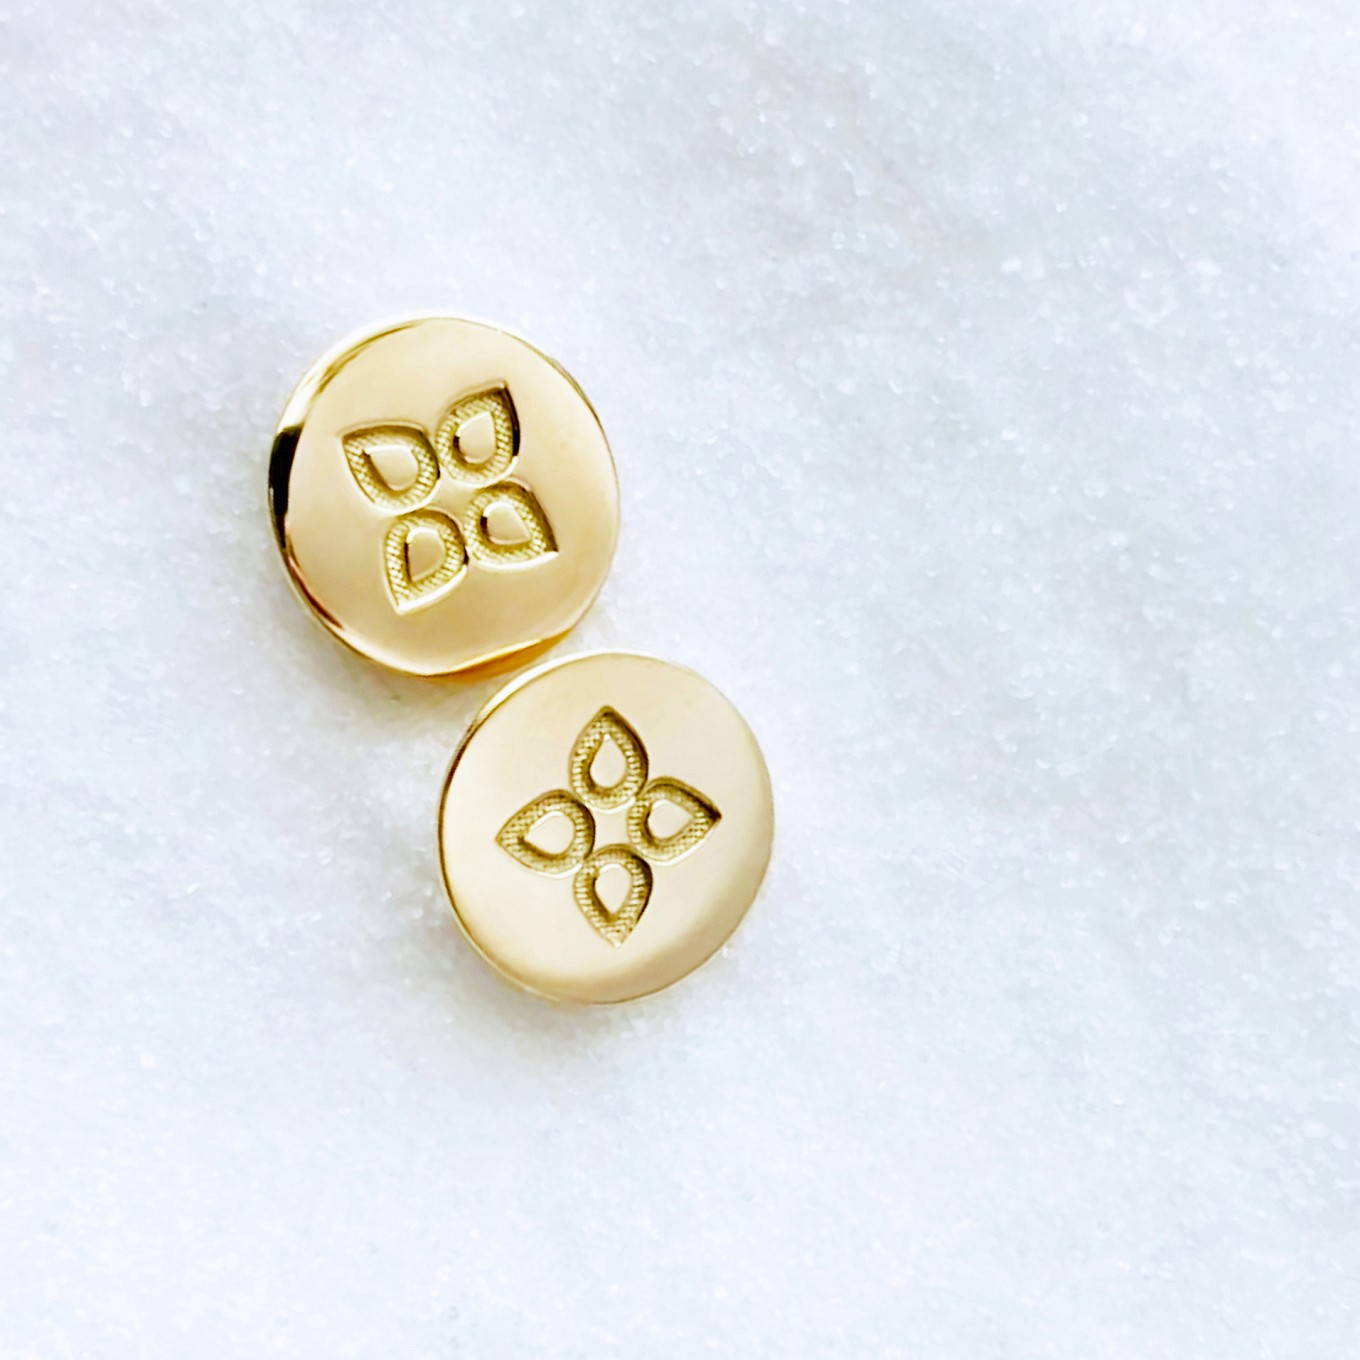 10 MM LOVE DISC EARRINGS & YELLOW GOLD